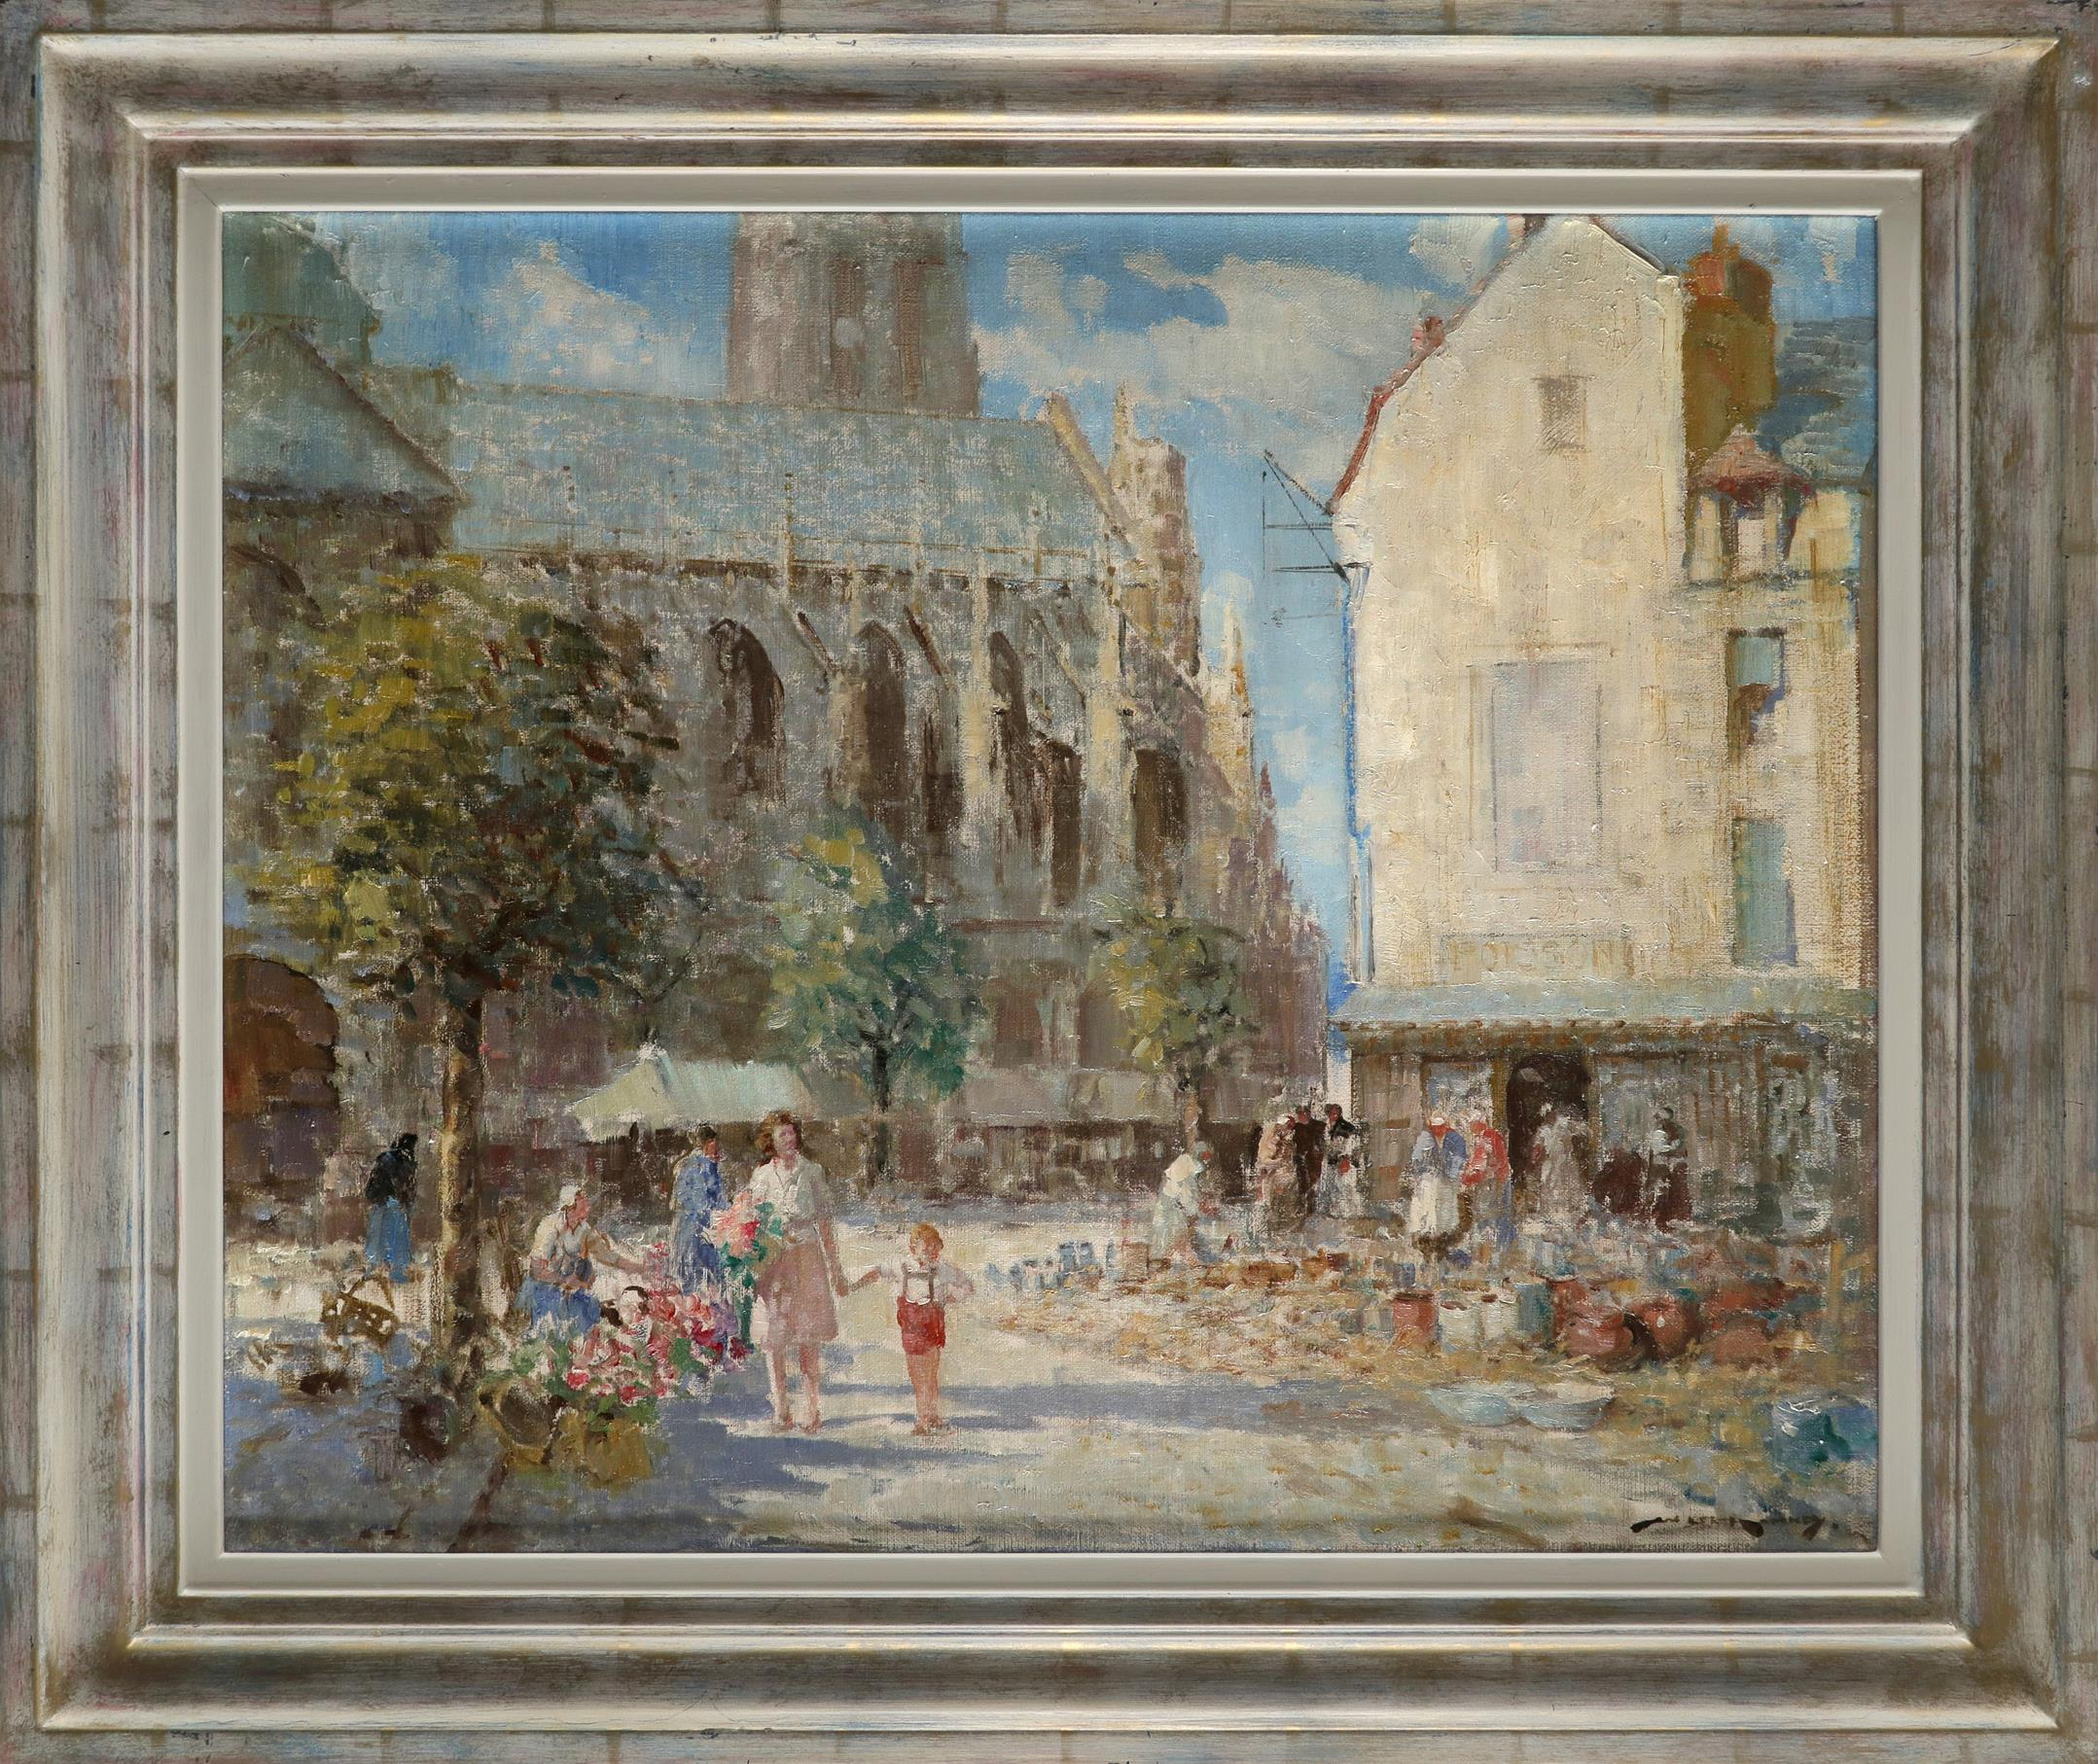 ‡William Lee Hankey RWS, RI, ROI, RE, NS (1869-1952) The Morning Purchase, Dieppe Signed W LEE - Image 2 of 3